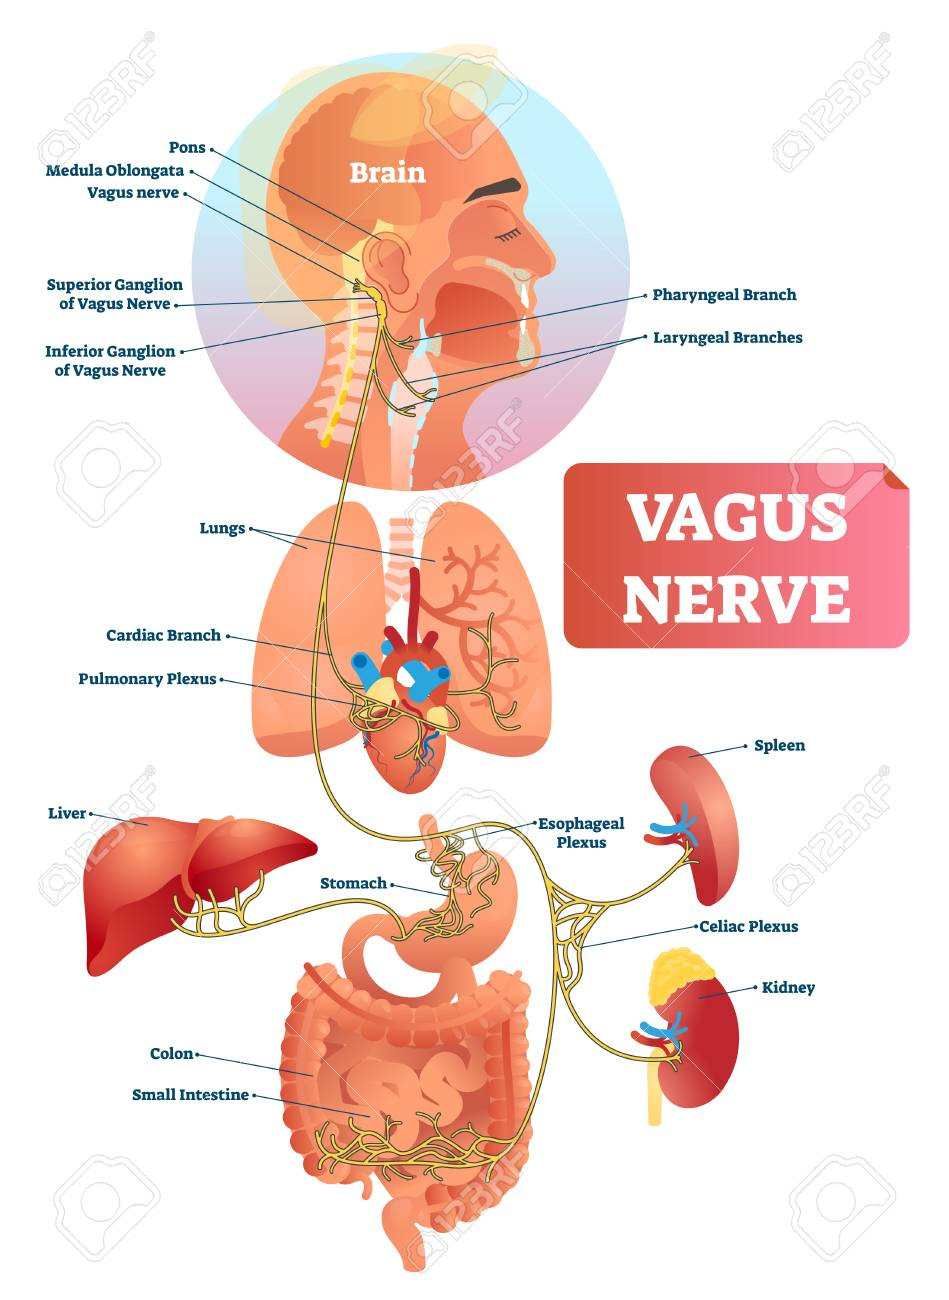 Vagus nerve vector illustration. Labeled anatomical structure scheme and location diagram of human body longest nerve. Infographic with isolated ganglion, branches and plexus. Inner biological ANS. - 120893353